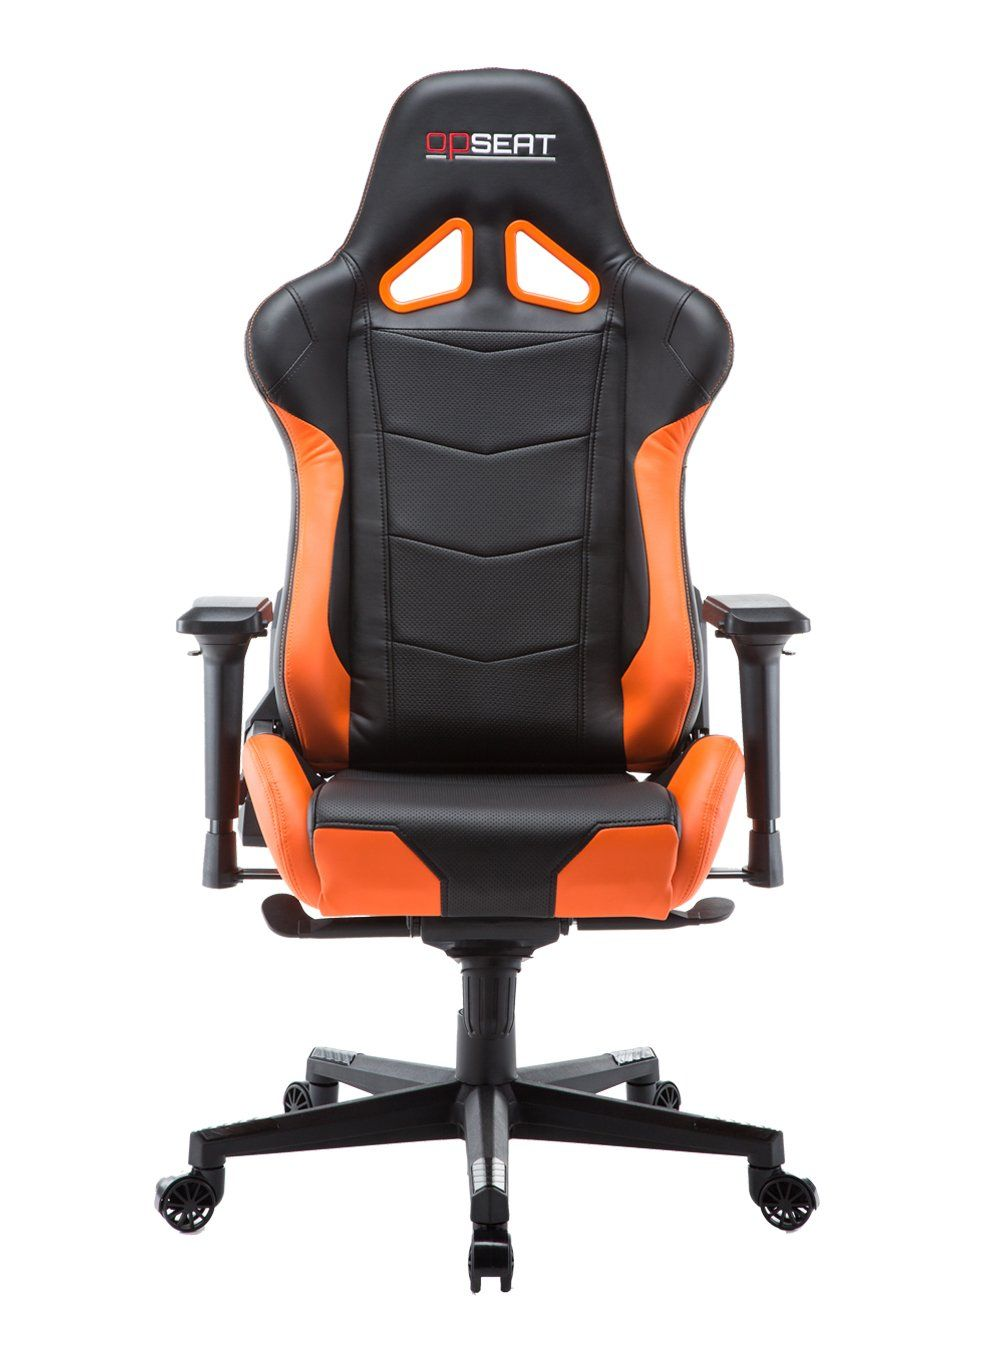 Racing Seat Office Chair Opseat Master Series 2018 Pc Gaming Chair Racing Seat Computer